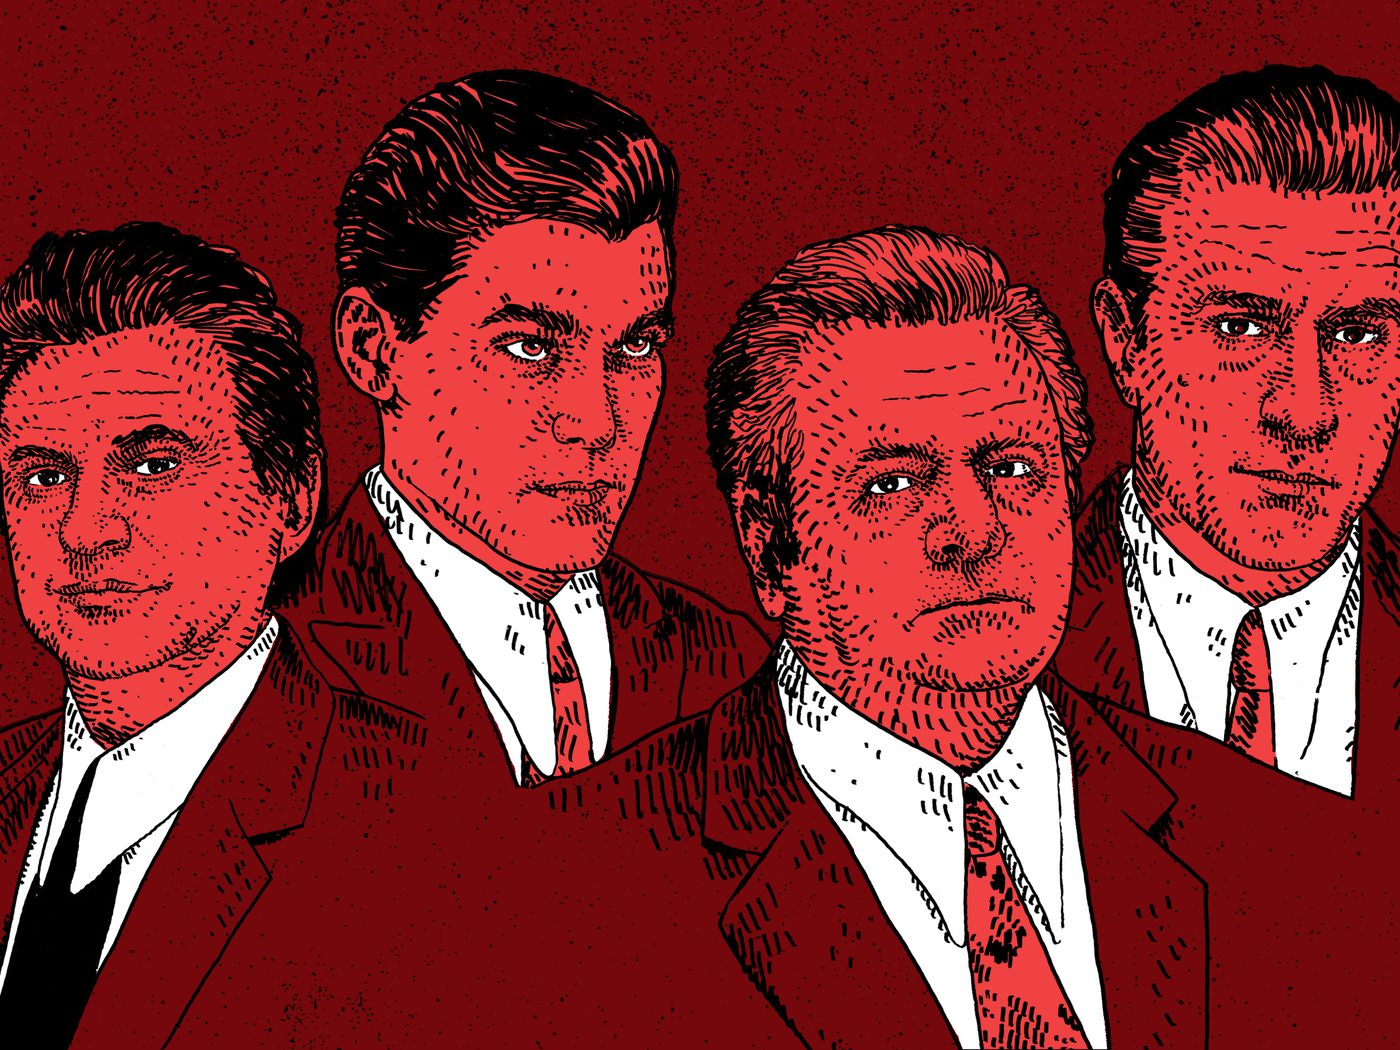 How 'Goodfellas' Serves As the Bridge Between 'The Godfather' and 'The  Sopranos' - The Ringer